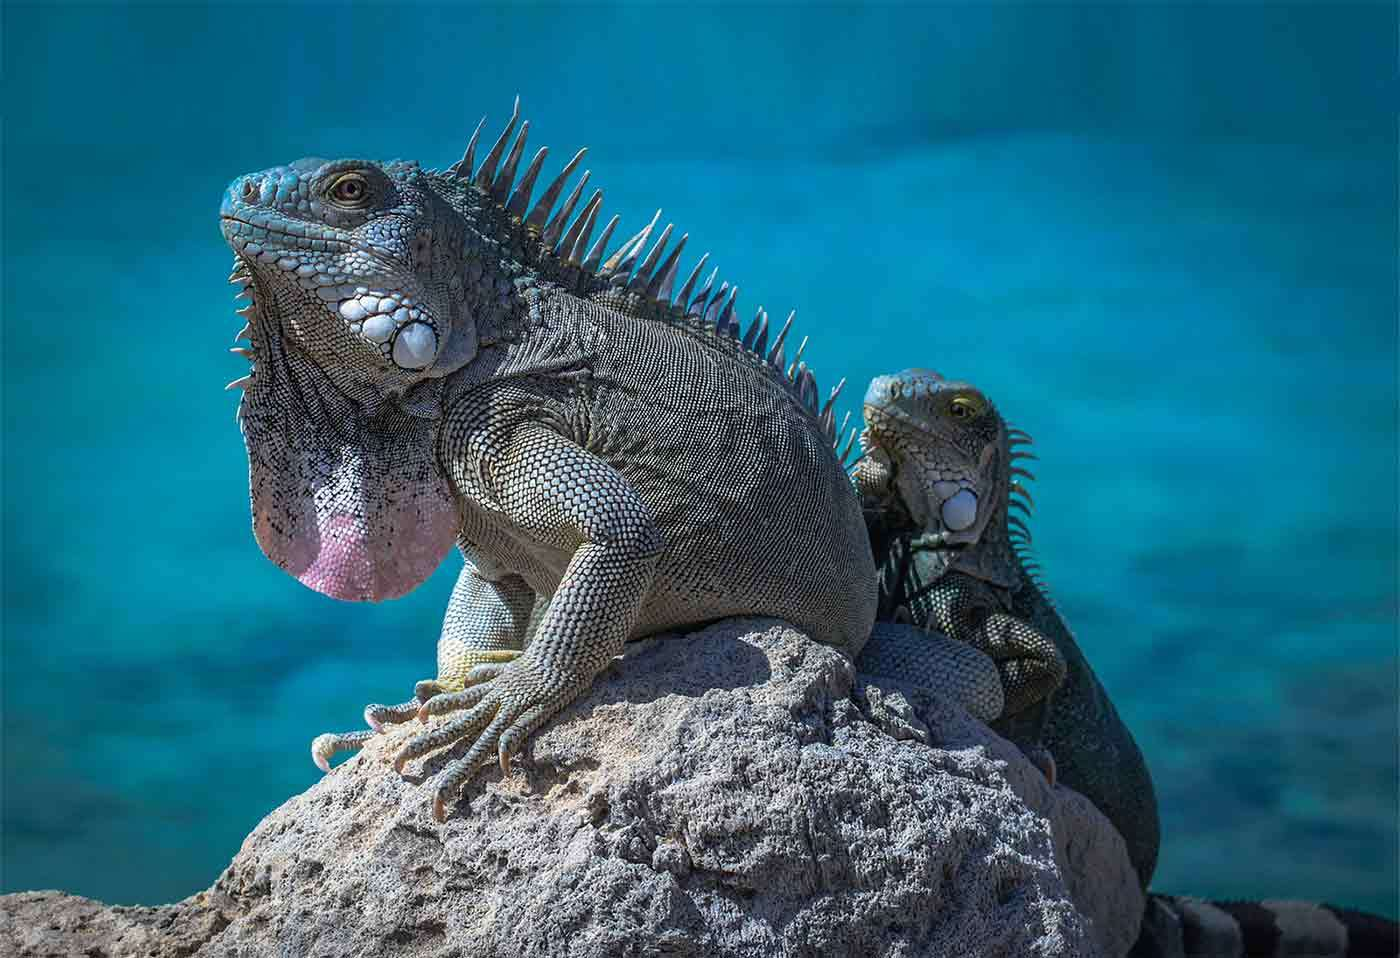 Vet Students and Faculty Support The Blue Iguana Recovery Project